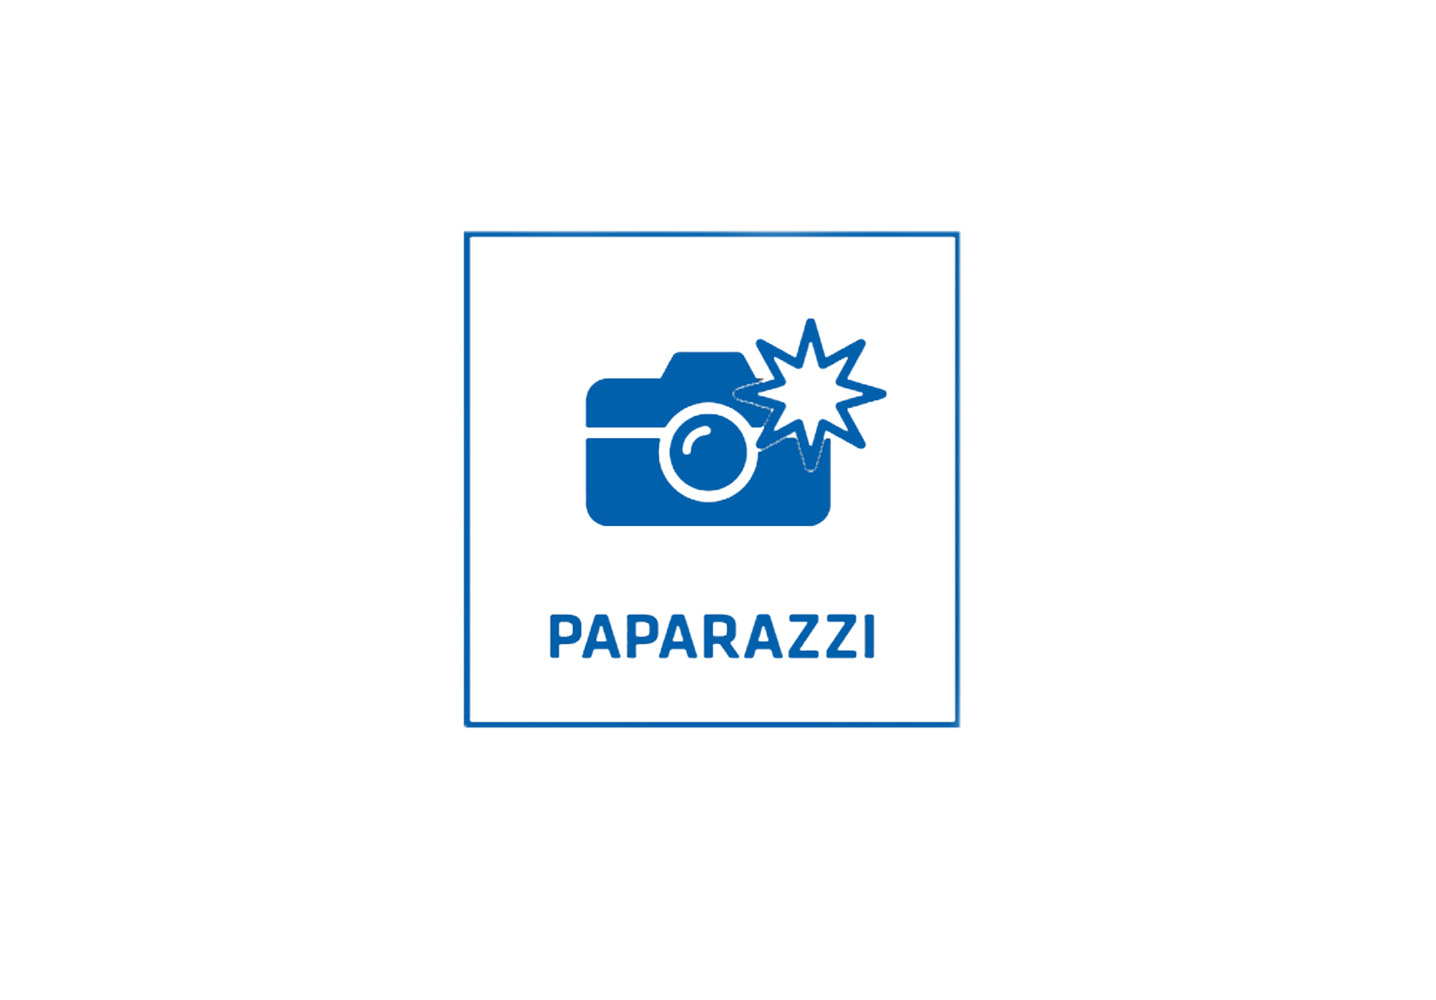 lighting effects_paparazzi